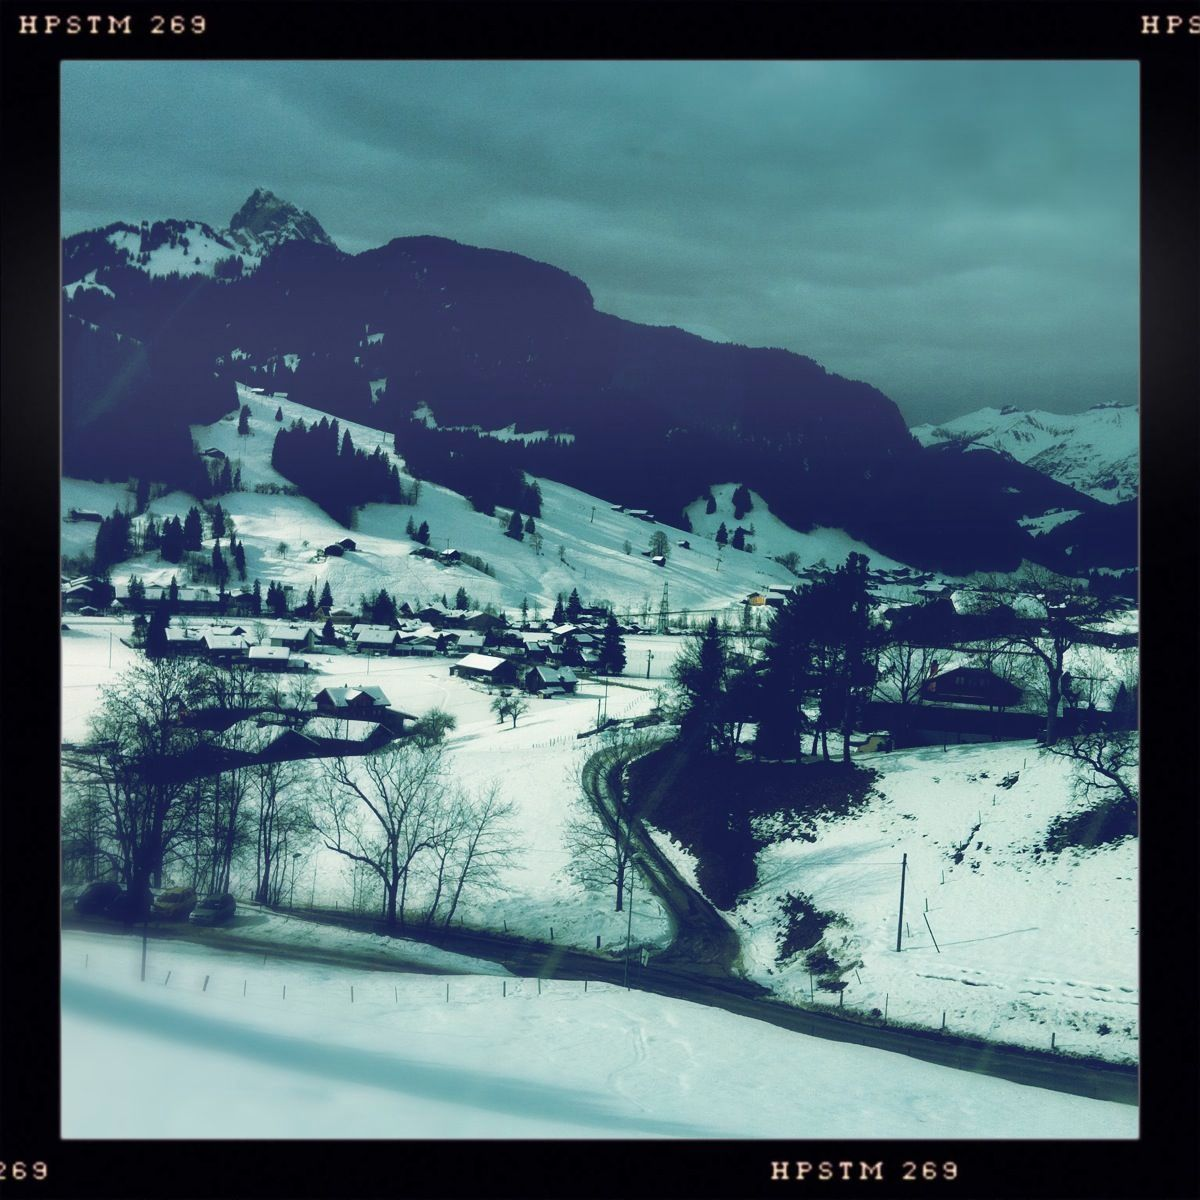 Wintersport in Gastaad58